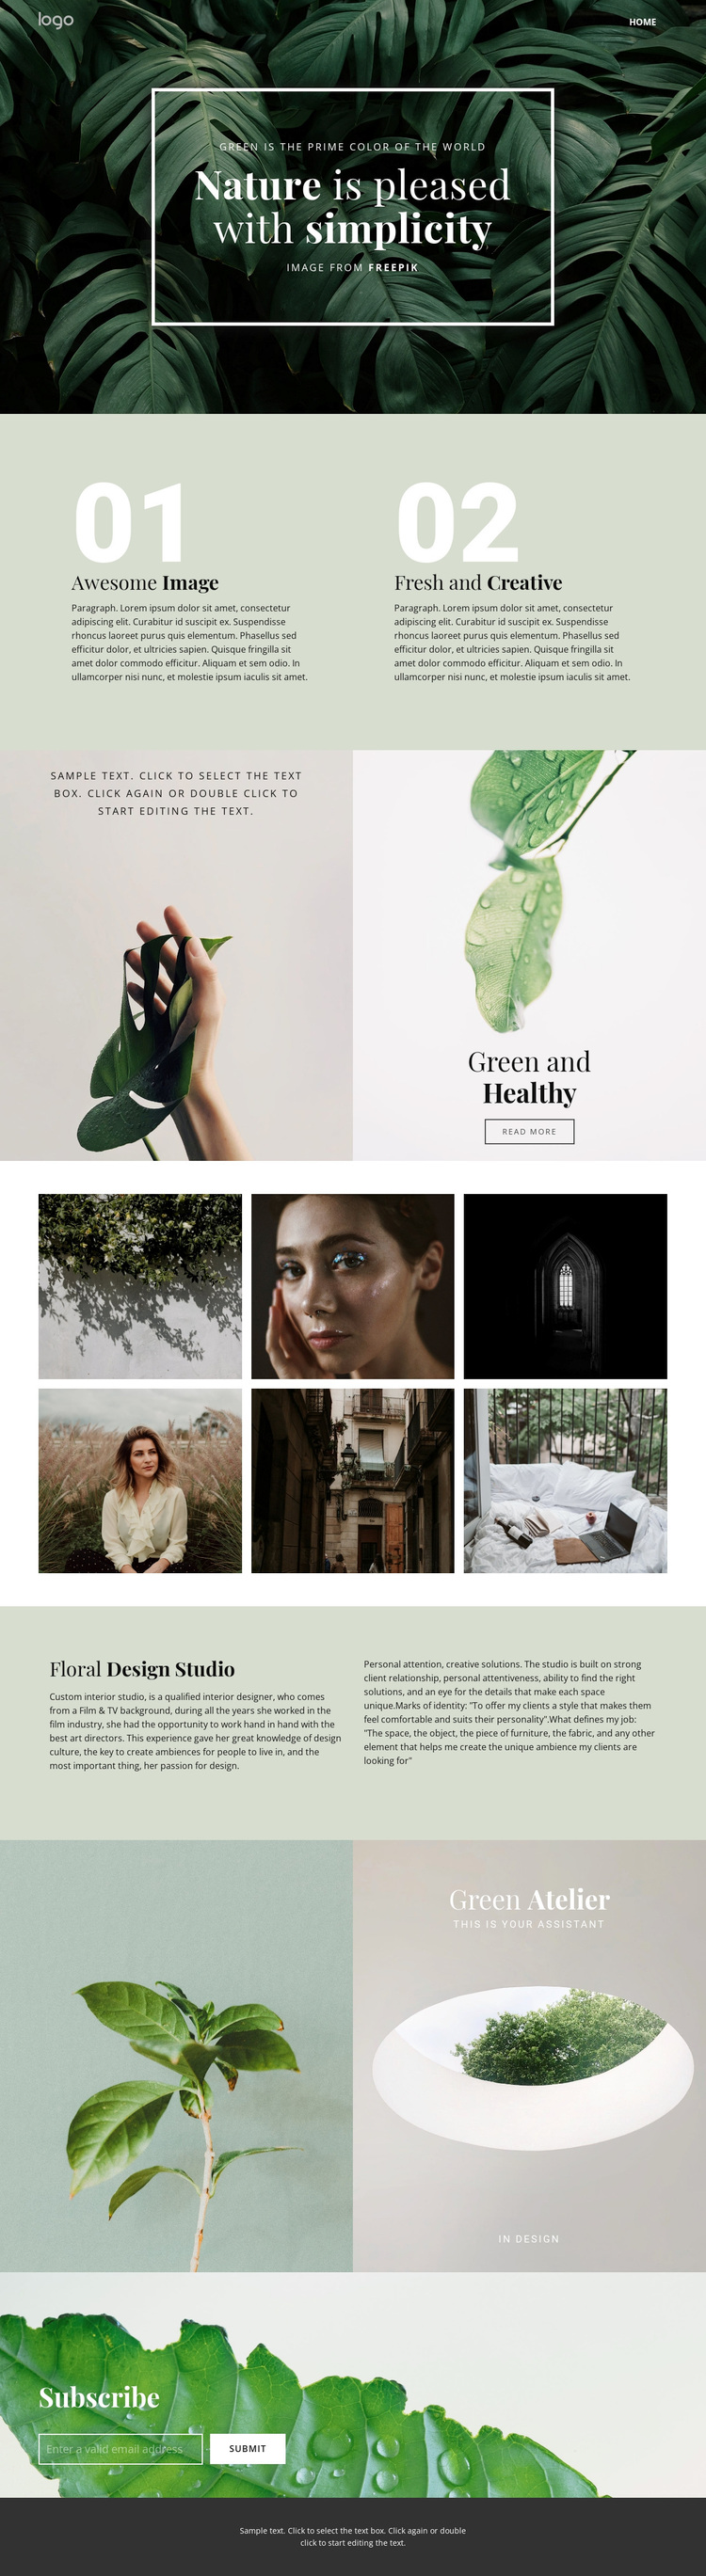 Beauty simplicity of nature Template